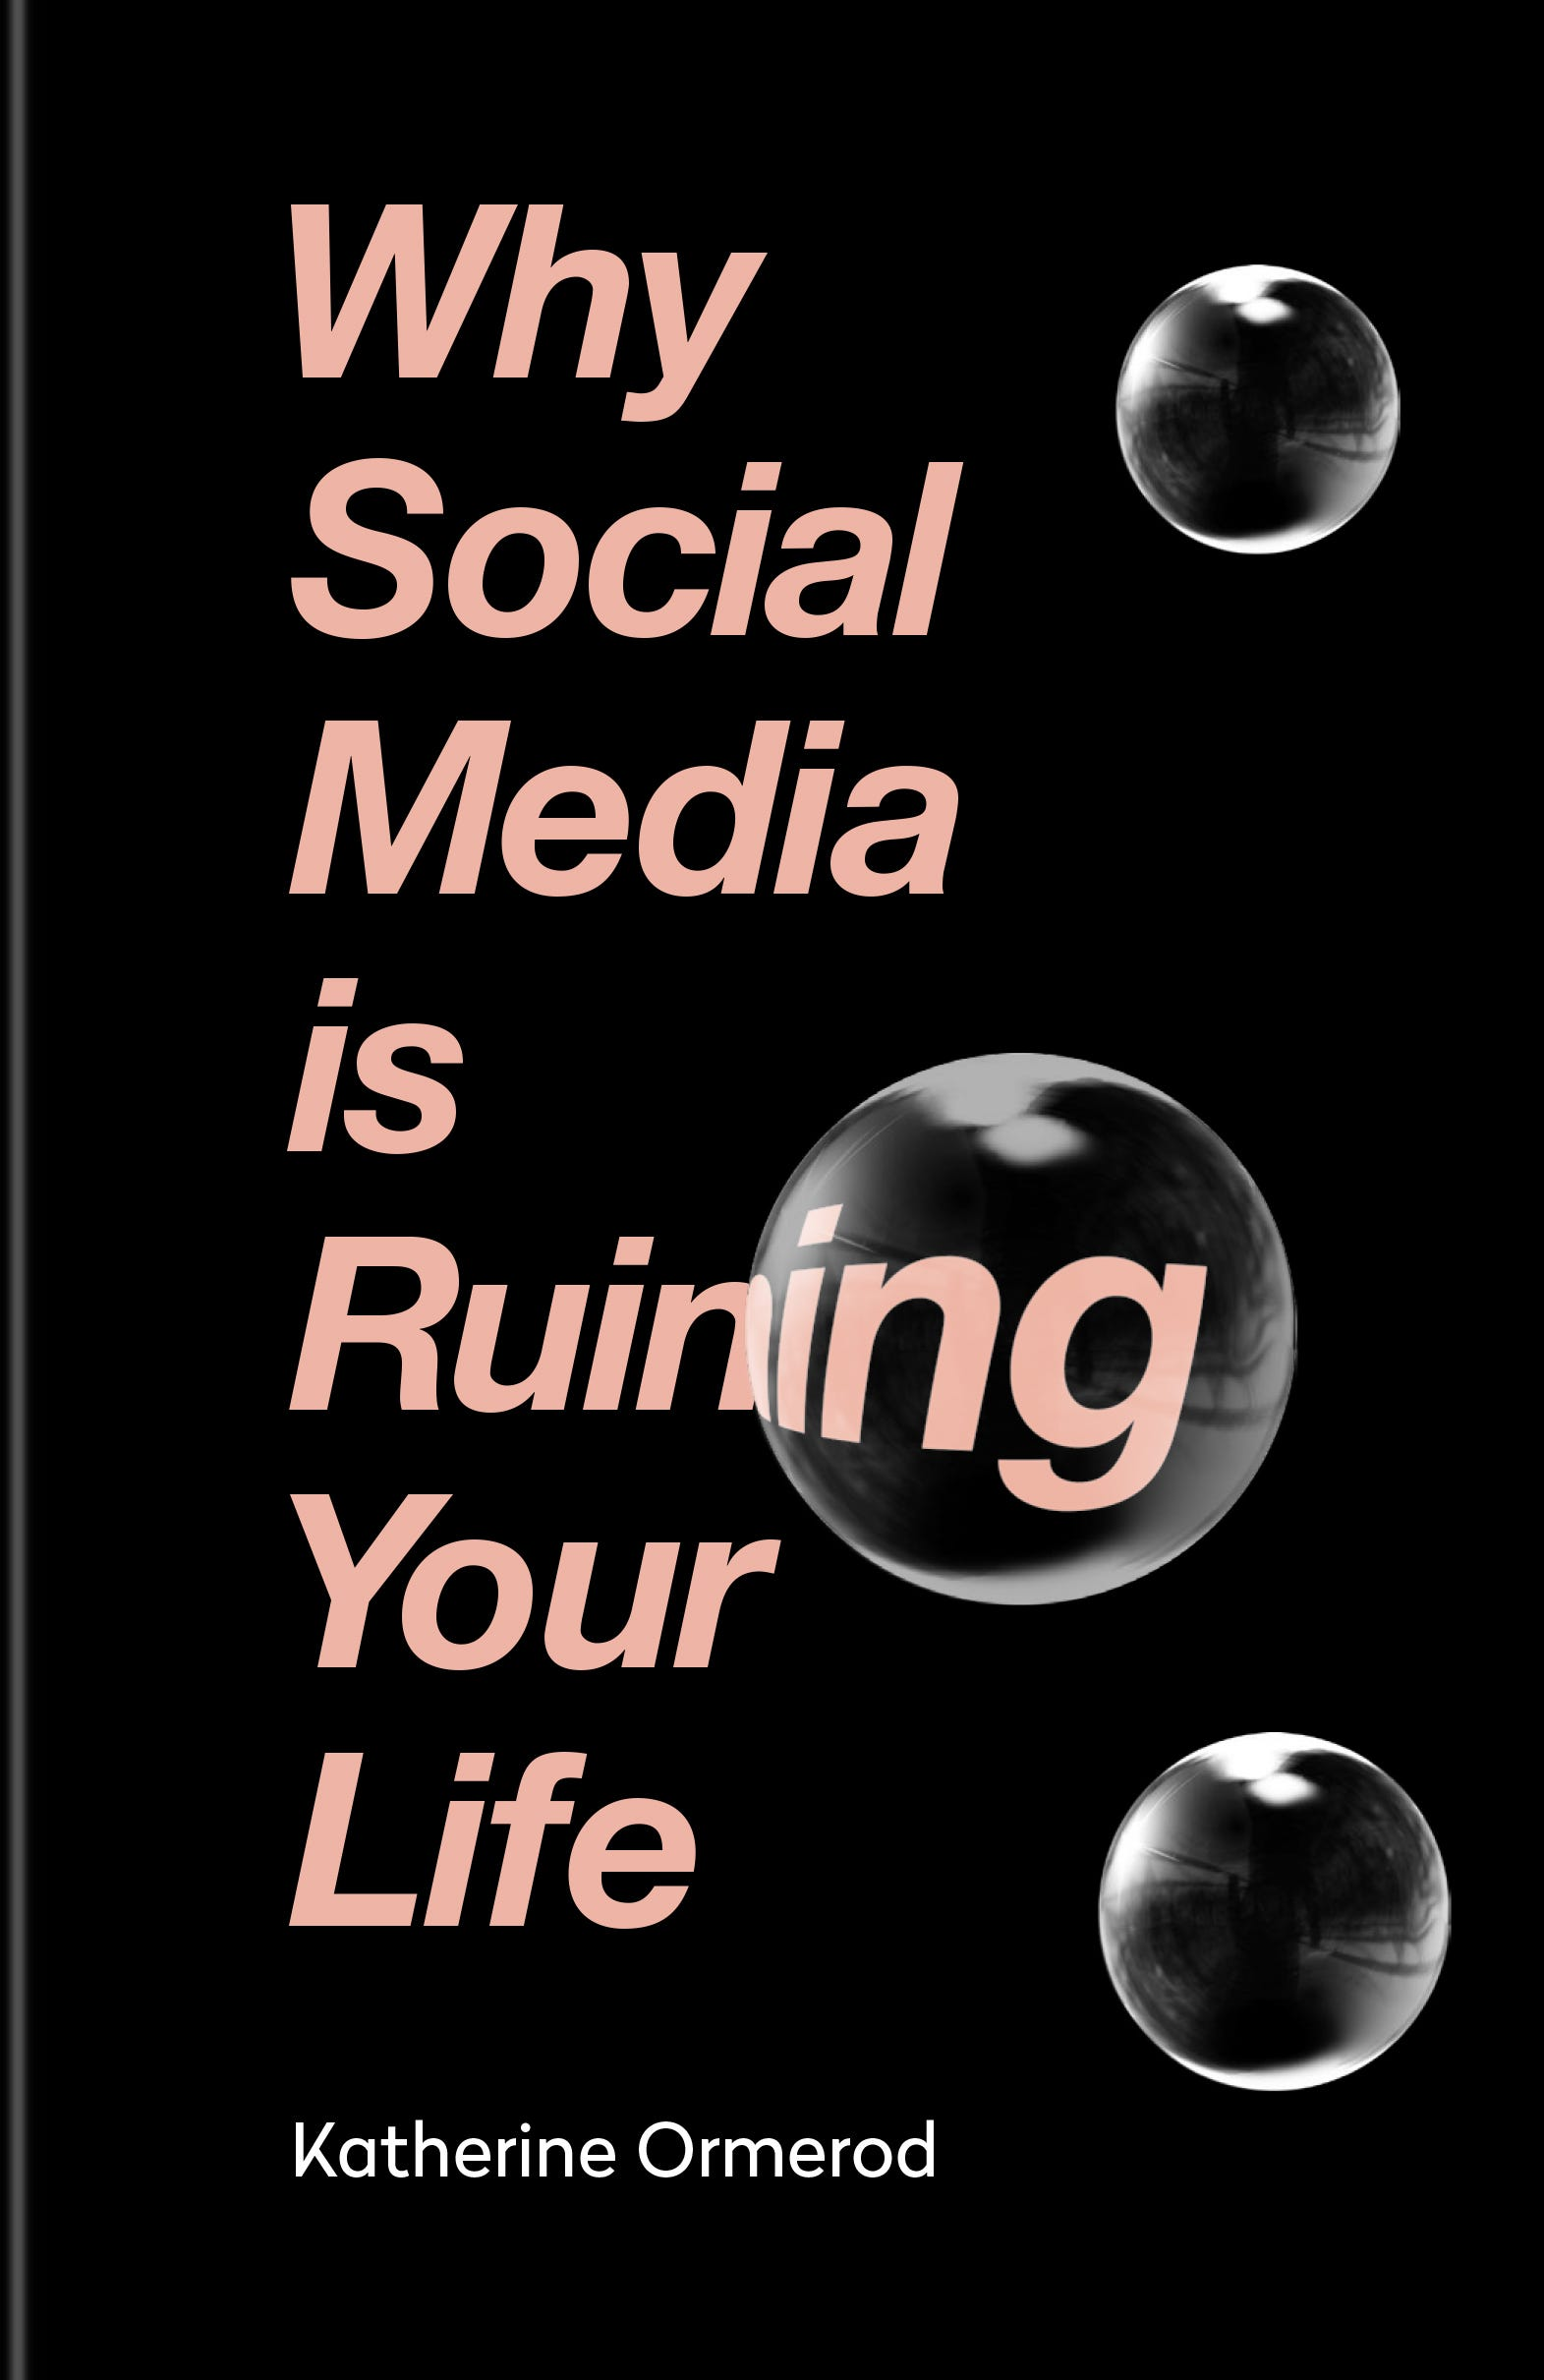 Why Social Media Is Ruining Your Life Extract